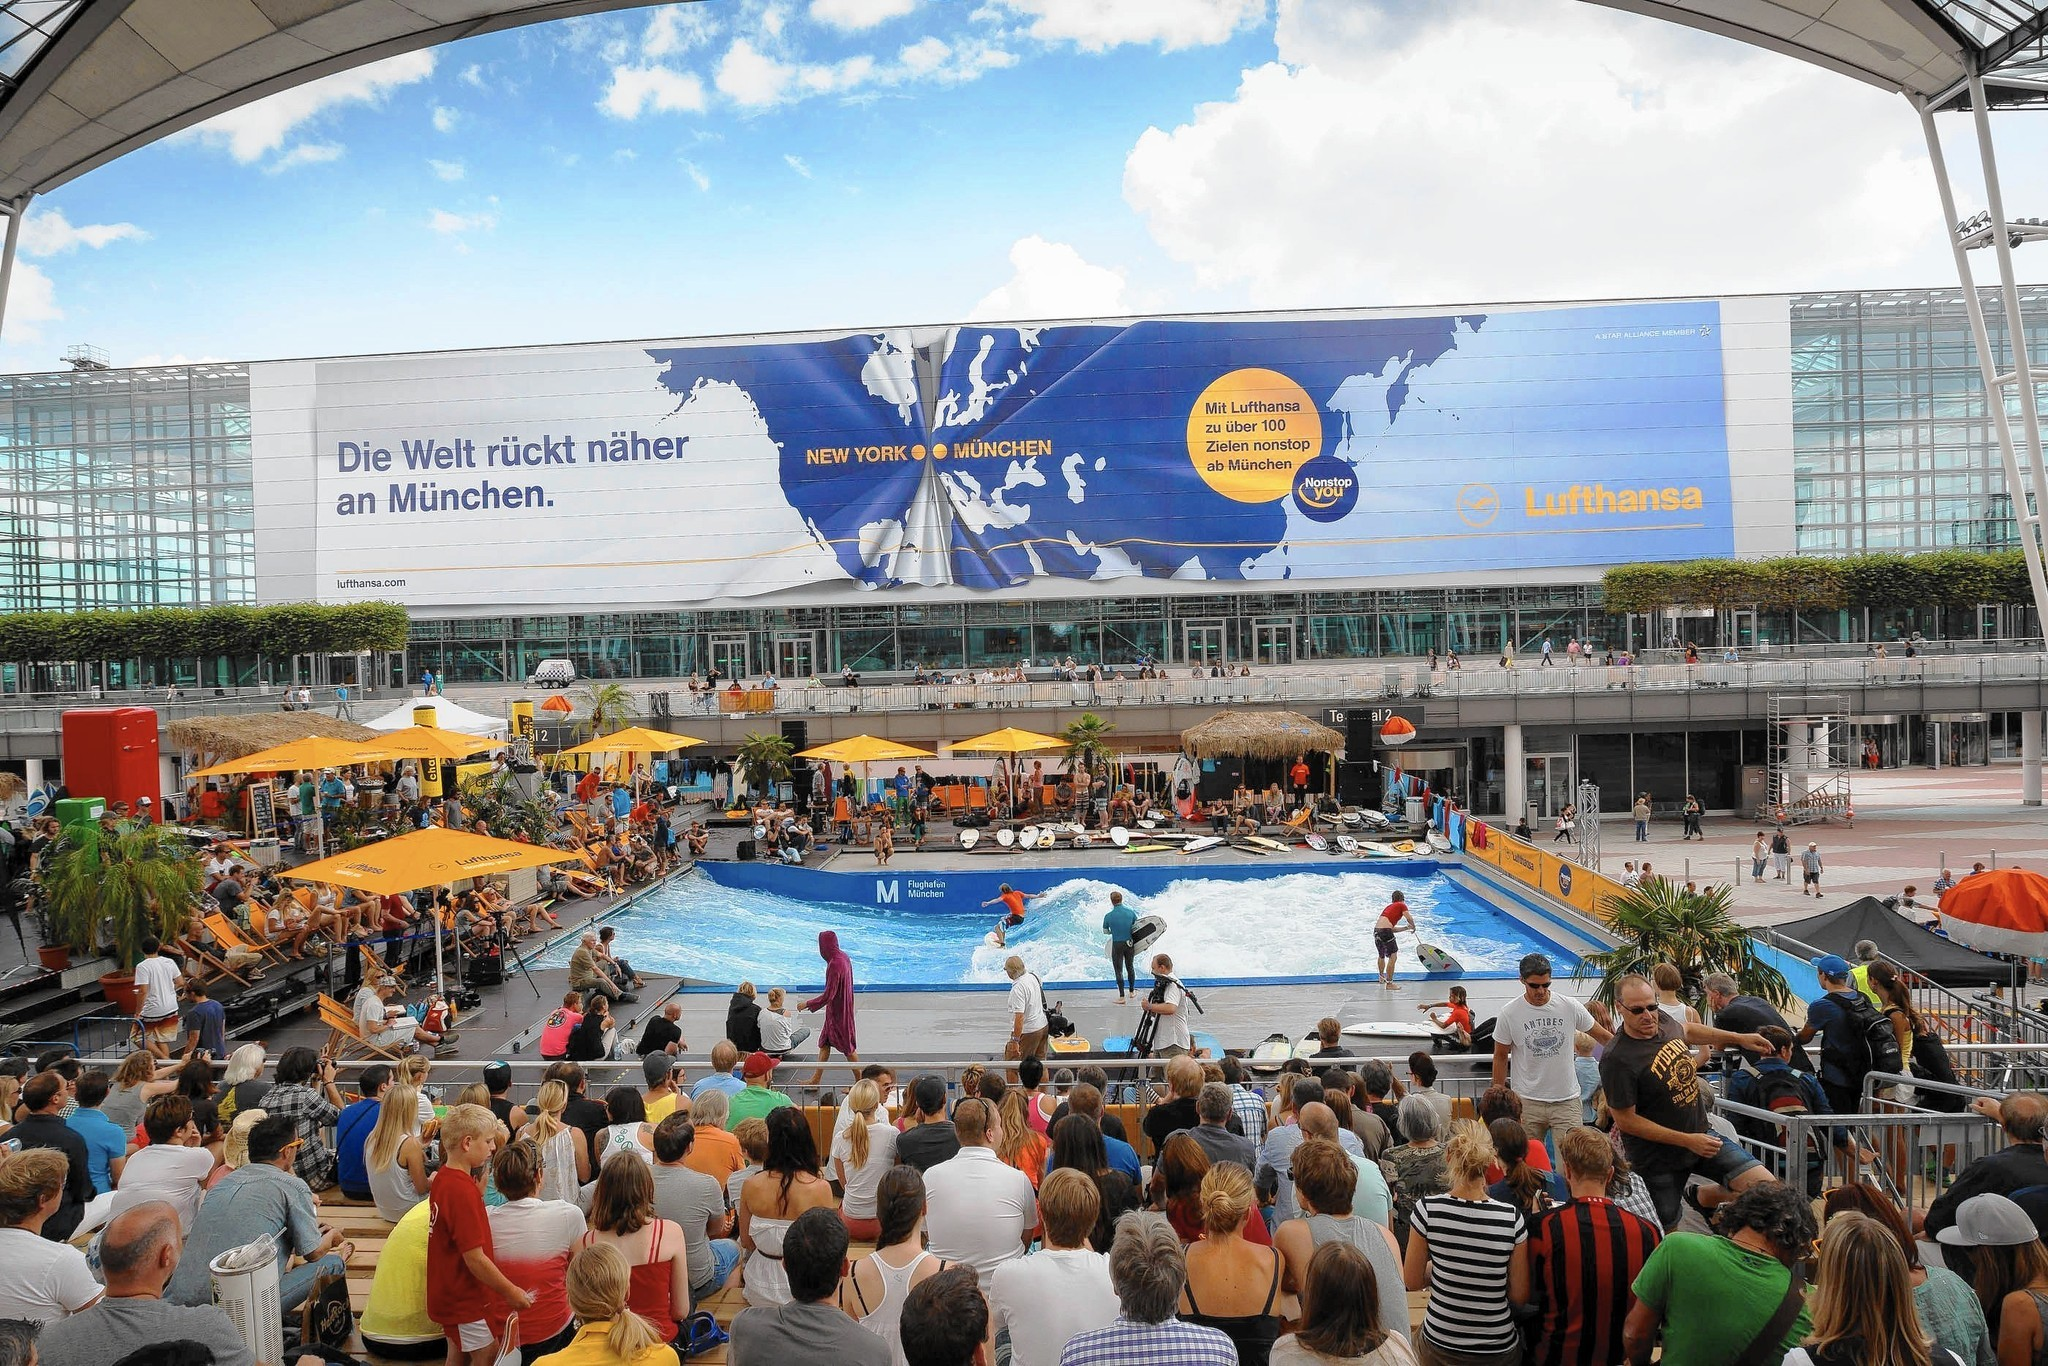 Surfing reaches championship level at the Munich airport